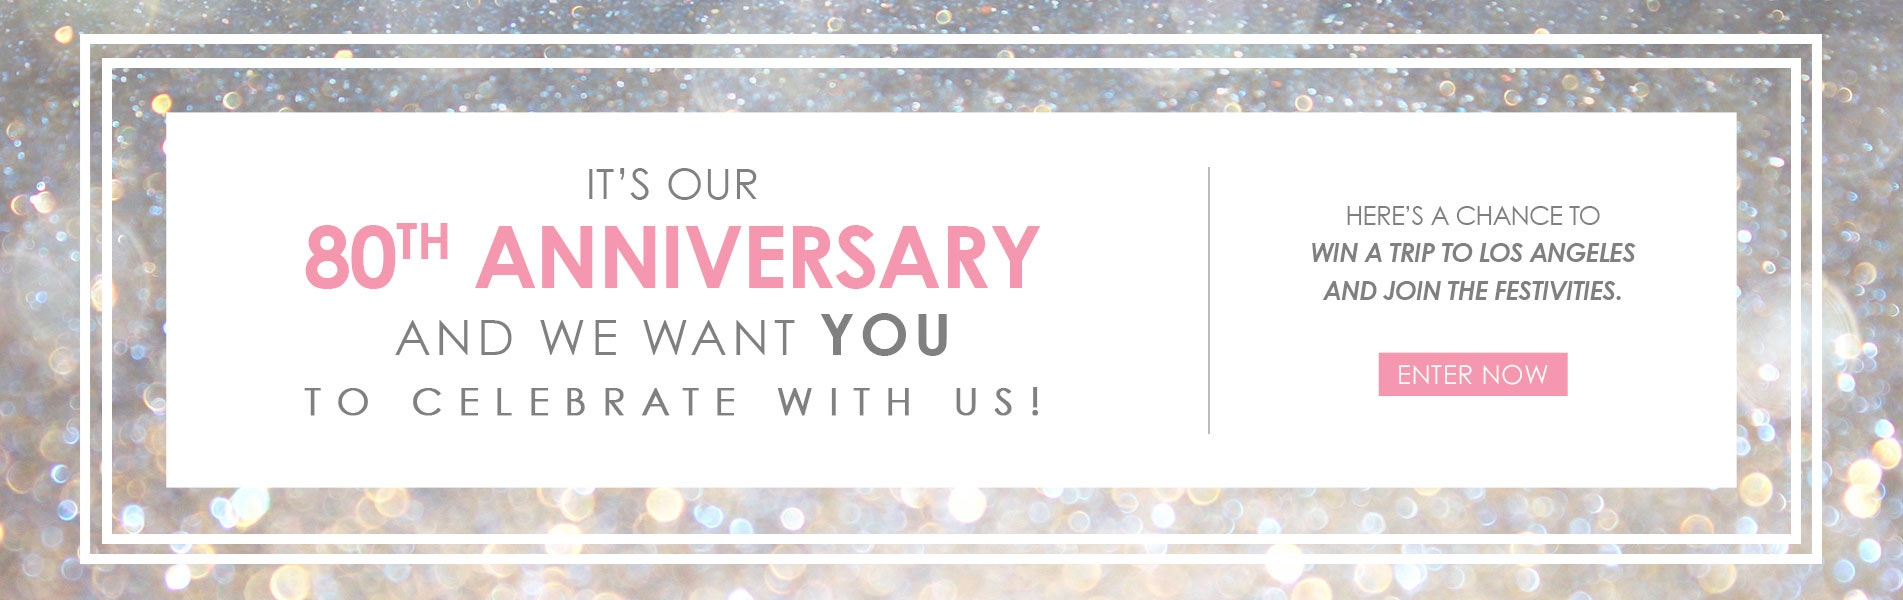 80th Anniversary Sweepstakes